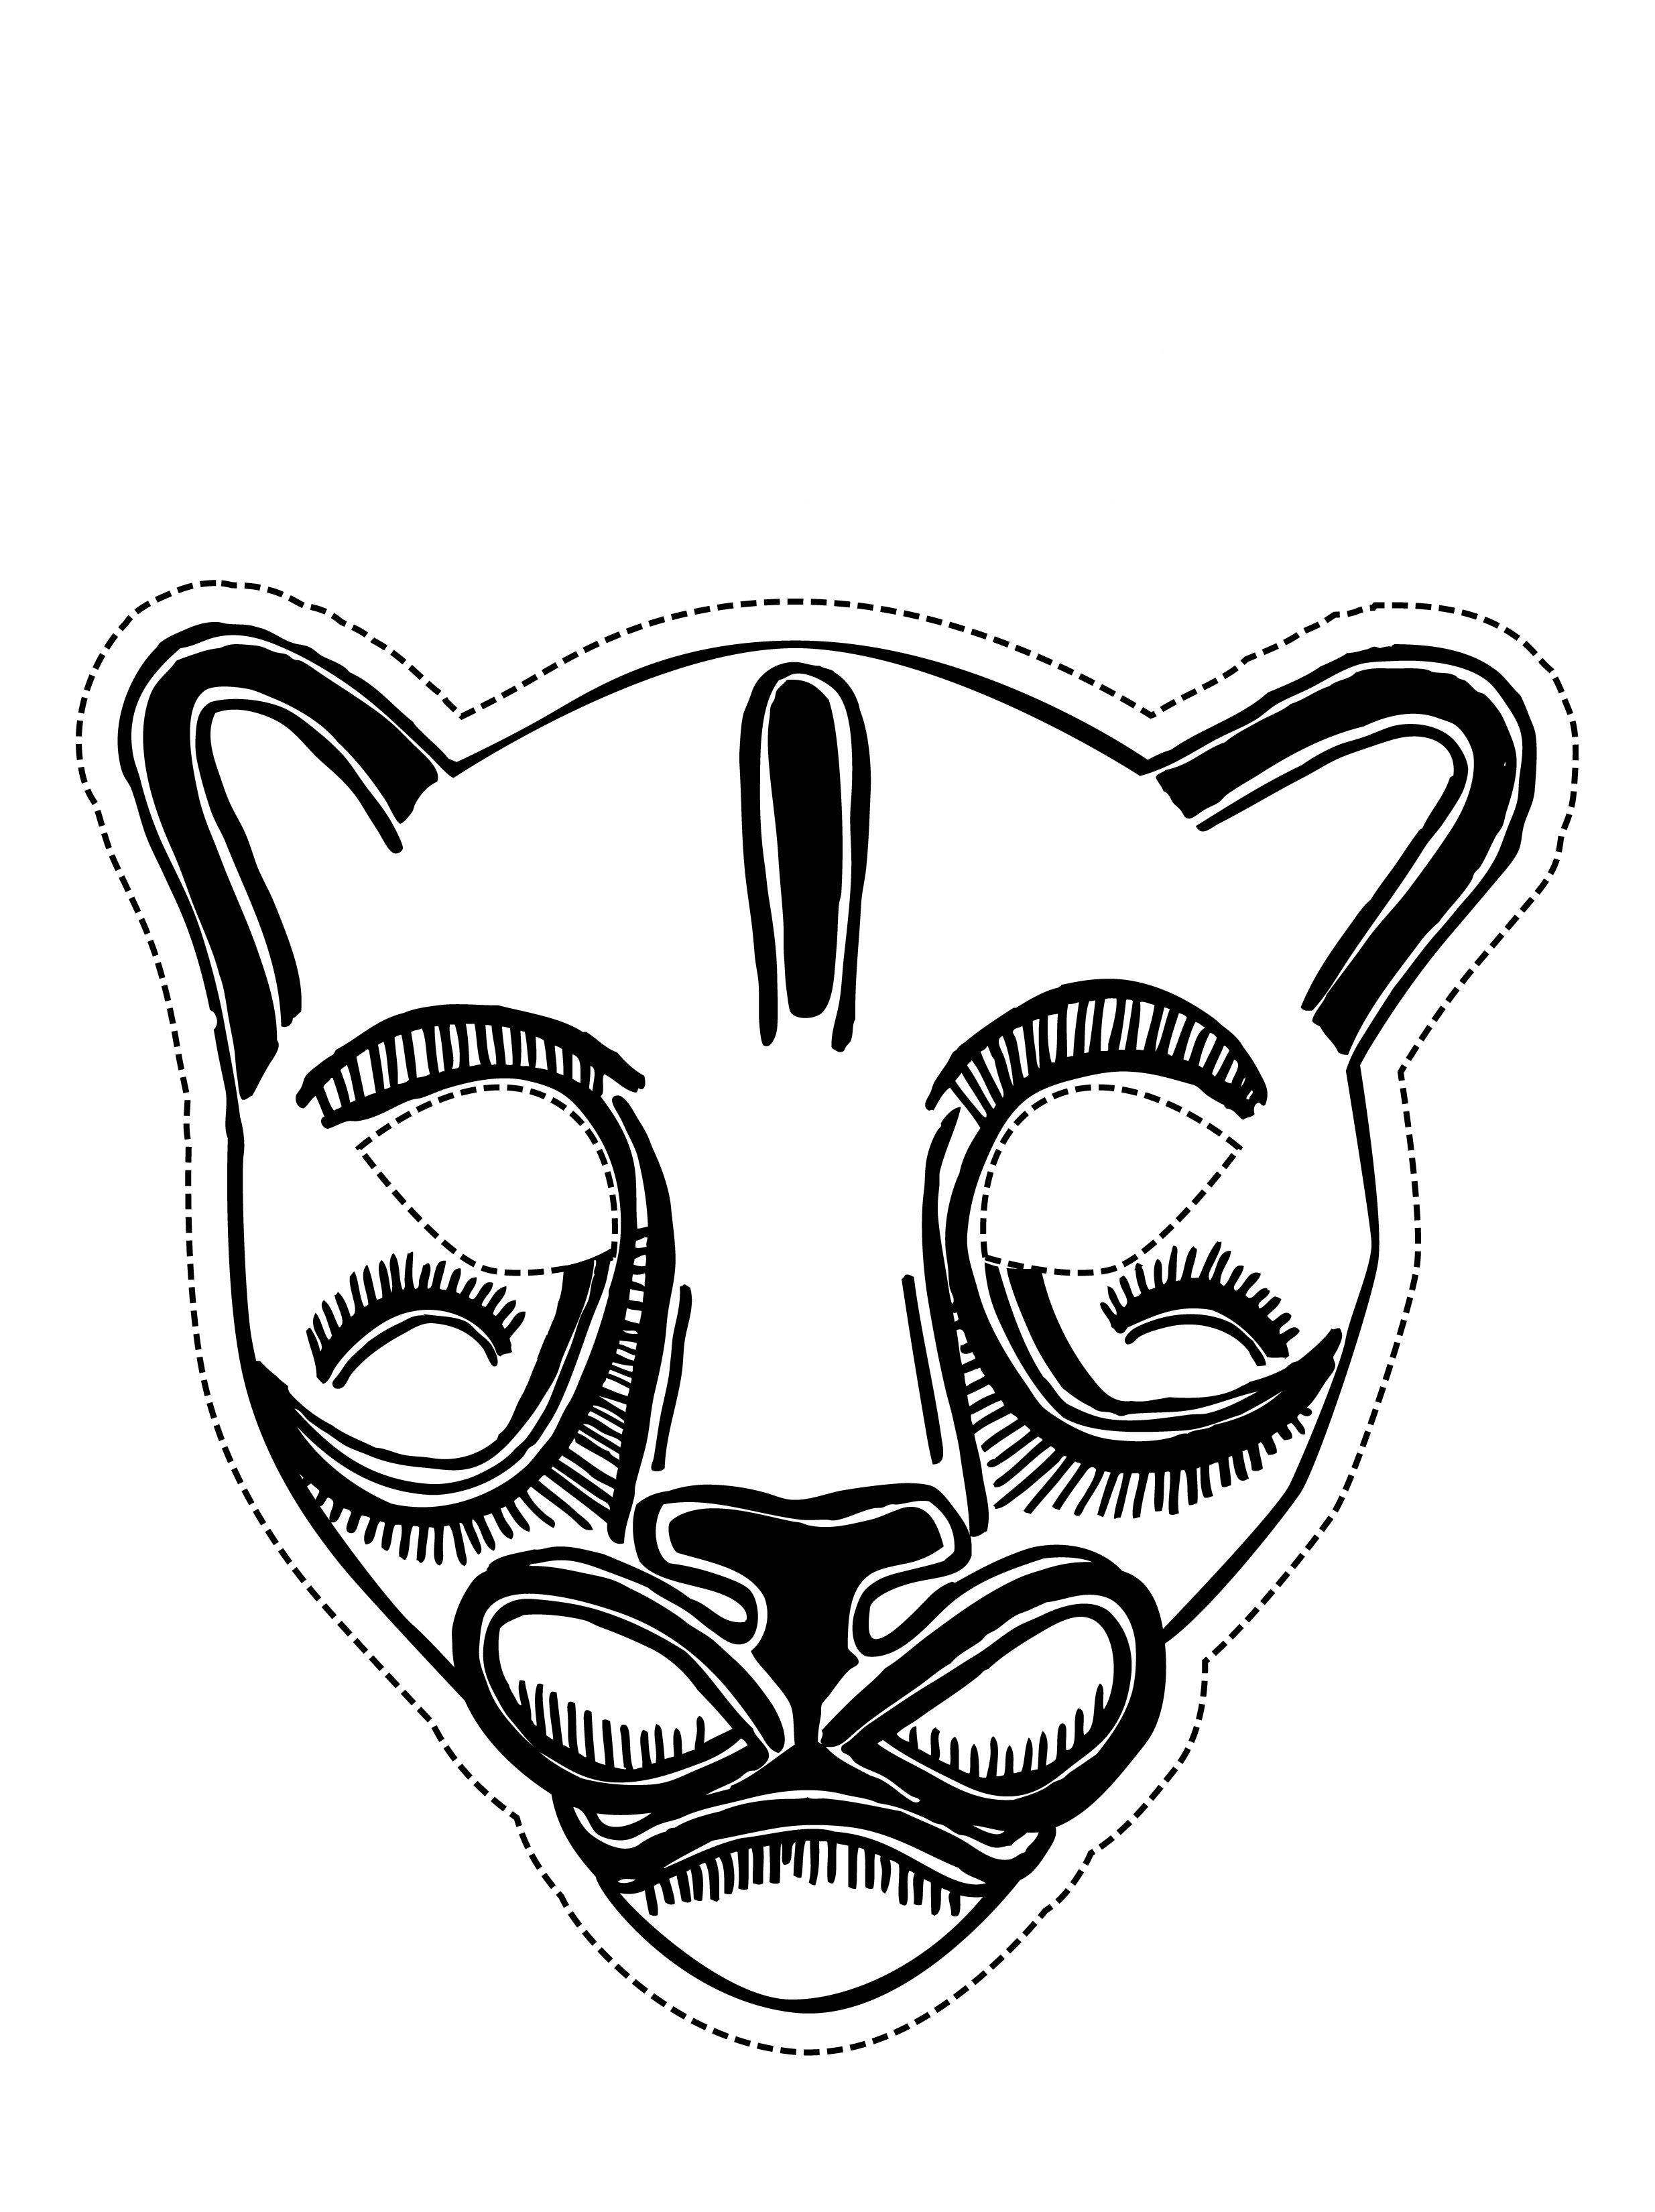 Animal Mask Coloring Pages  1  Pinterest  Animal masks and